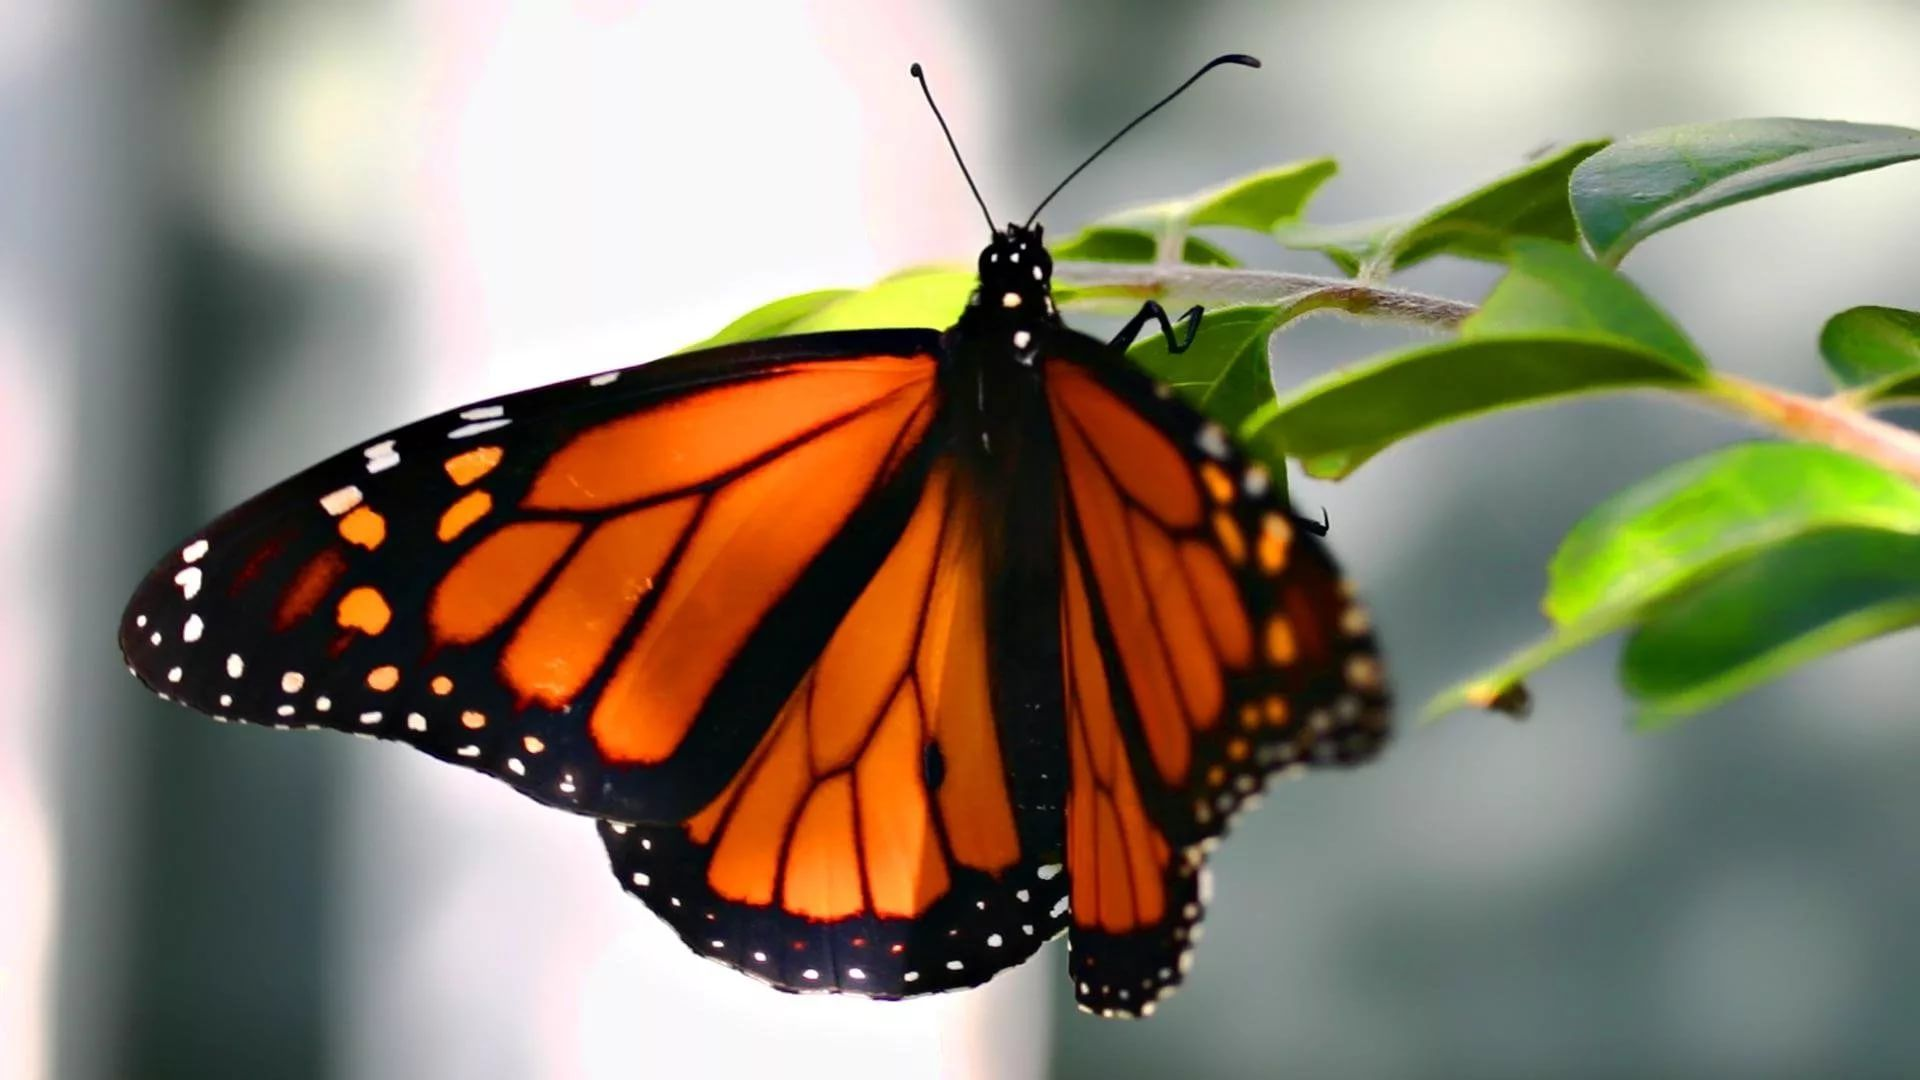 Nice Butterfly wallpaper image